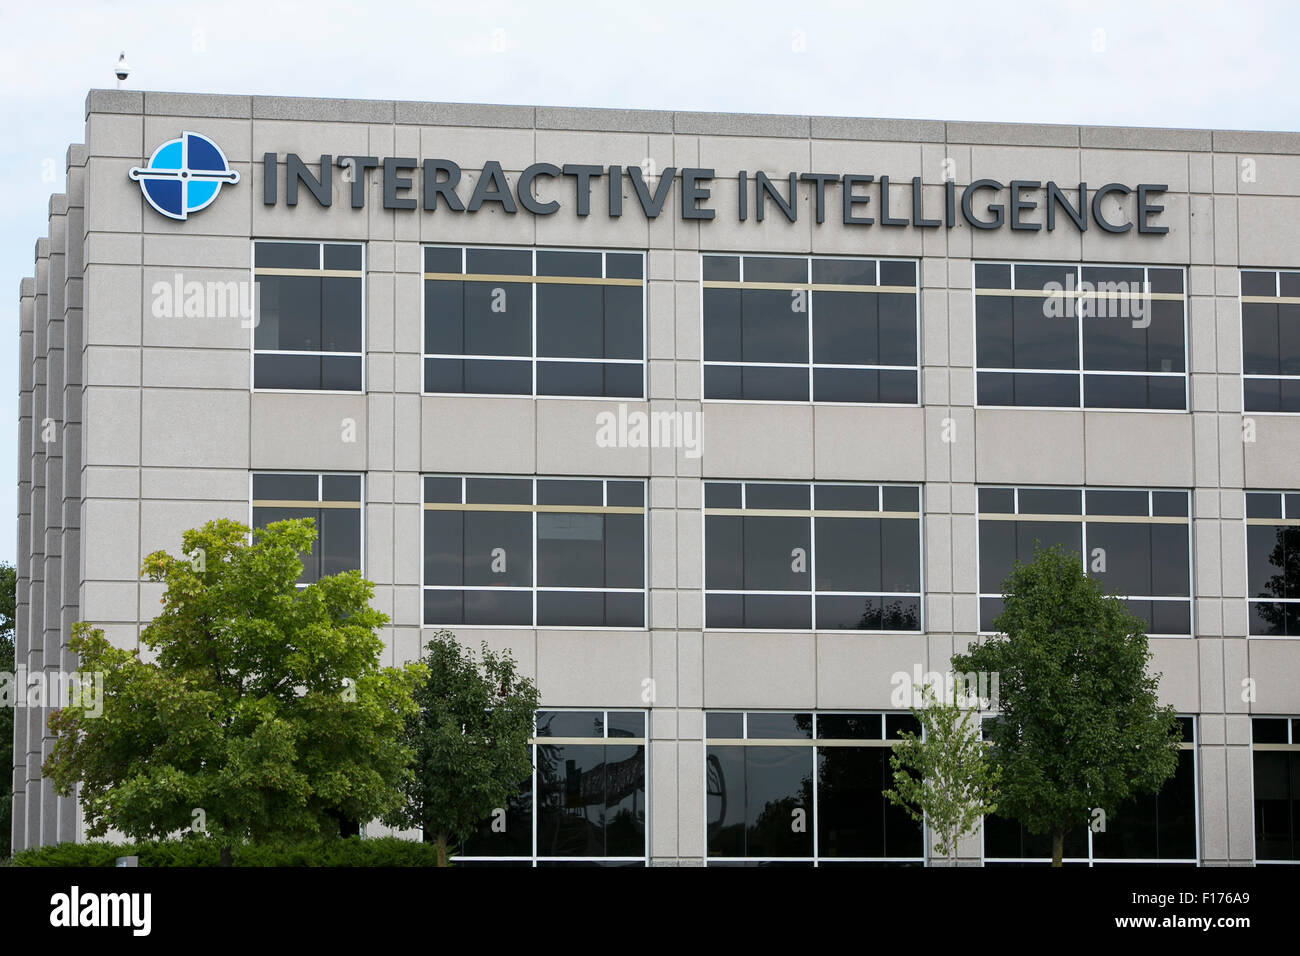 A logo sign outside of the headquarters of Interactive Intelligence, Inc., in Indianapolis, Indiana on August 15, - Stock Image